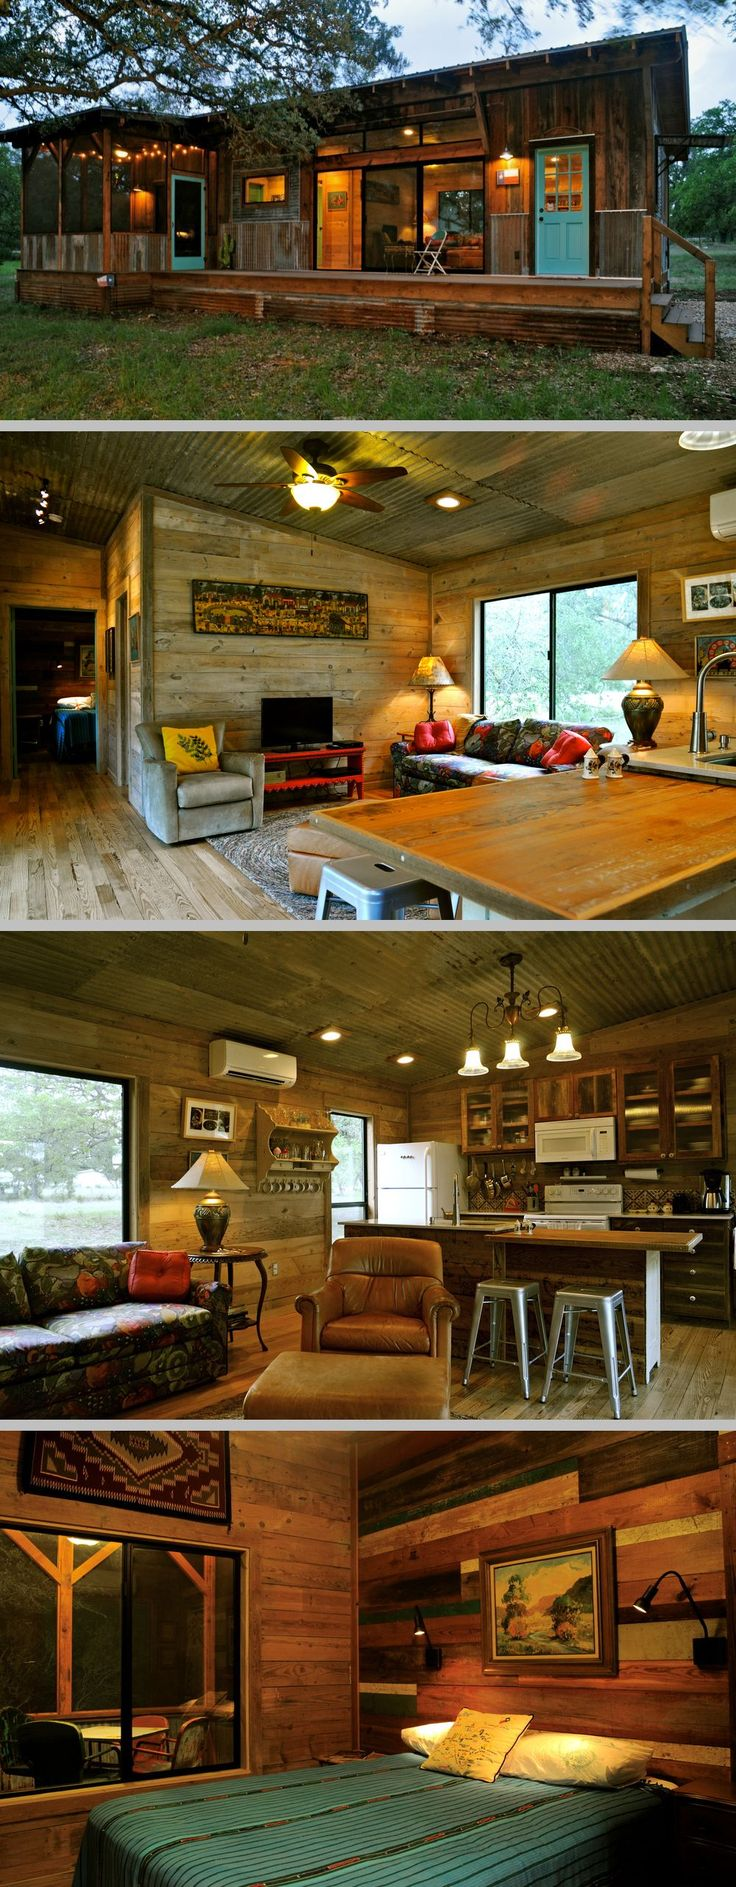 Built by Reclaimed Space from salvaged materials at their facility in  Austin, TX; with one bdrm/one bath, plus a nice deck & screened porch.